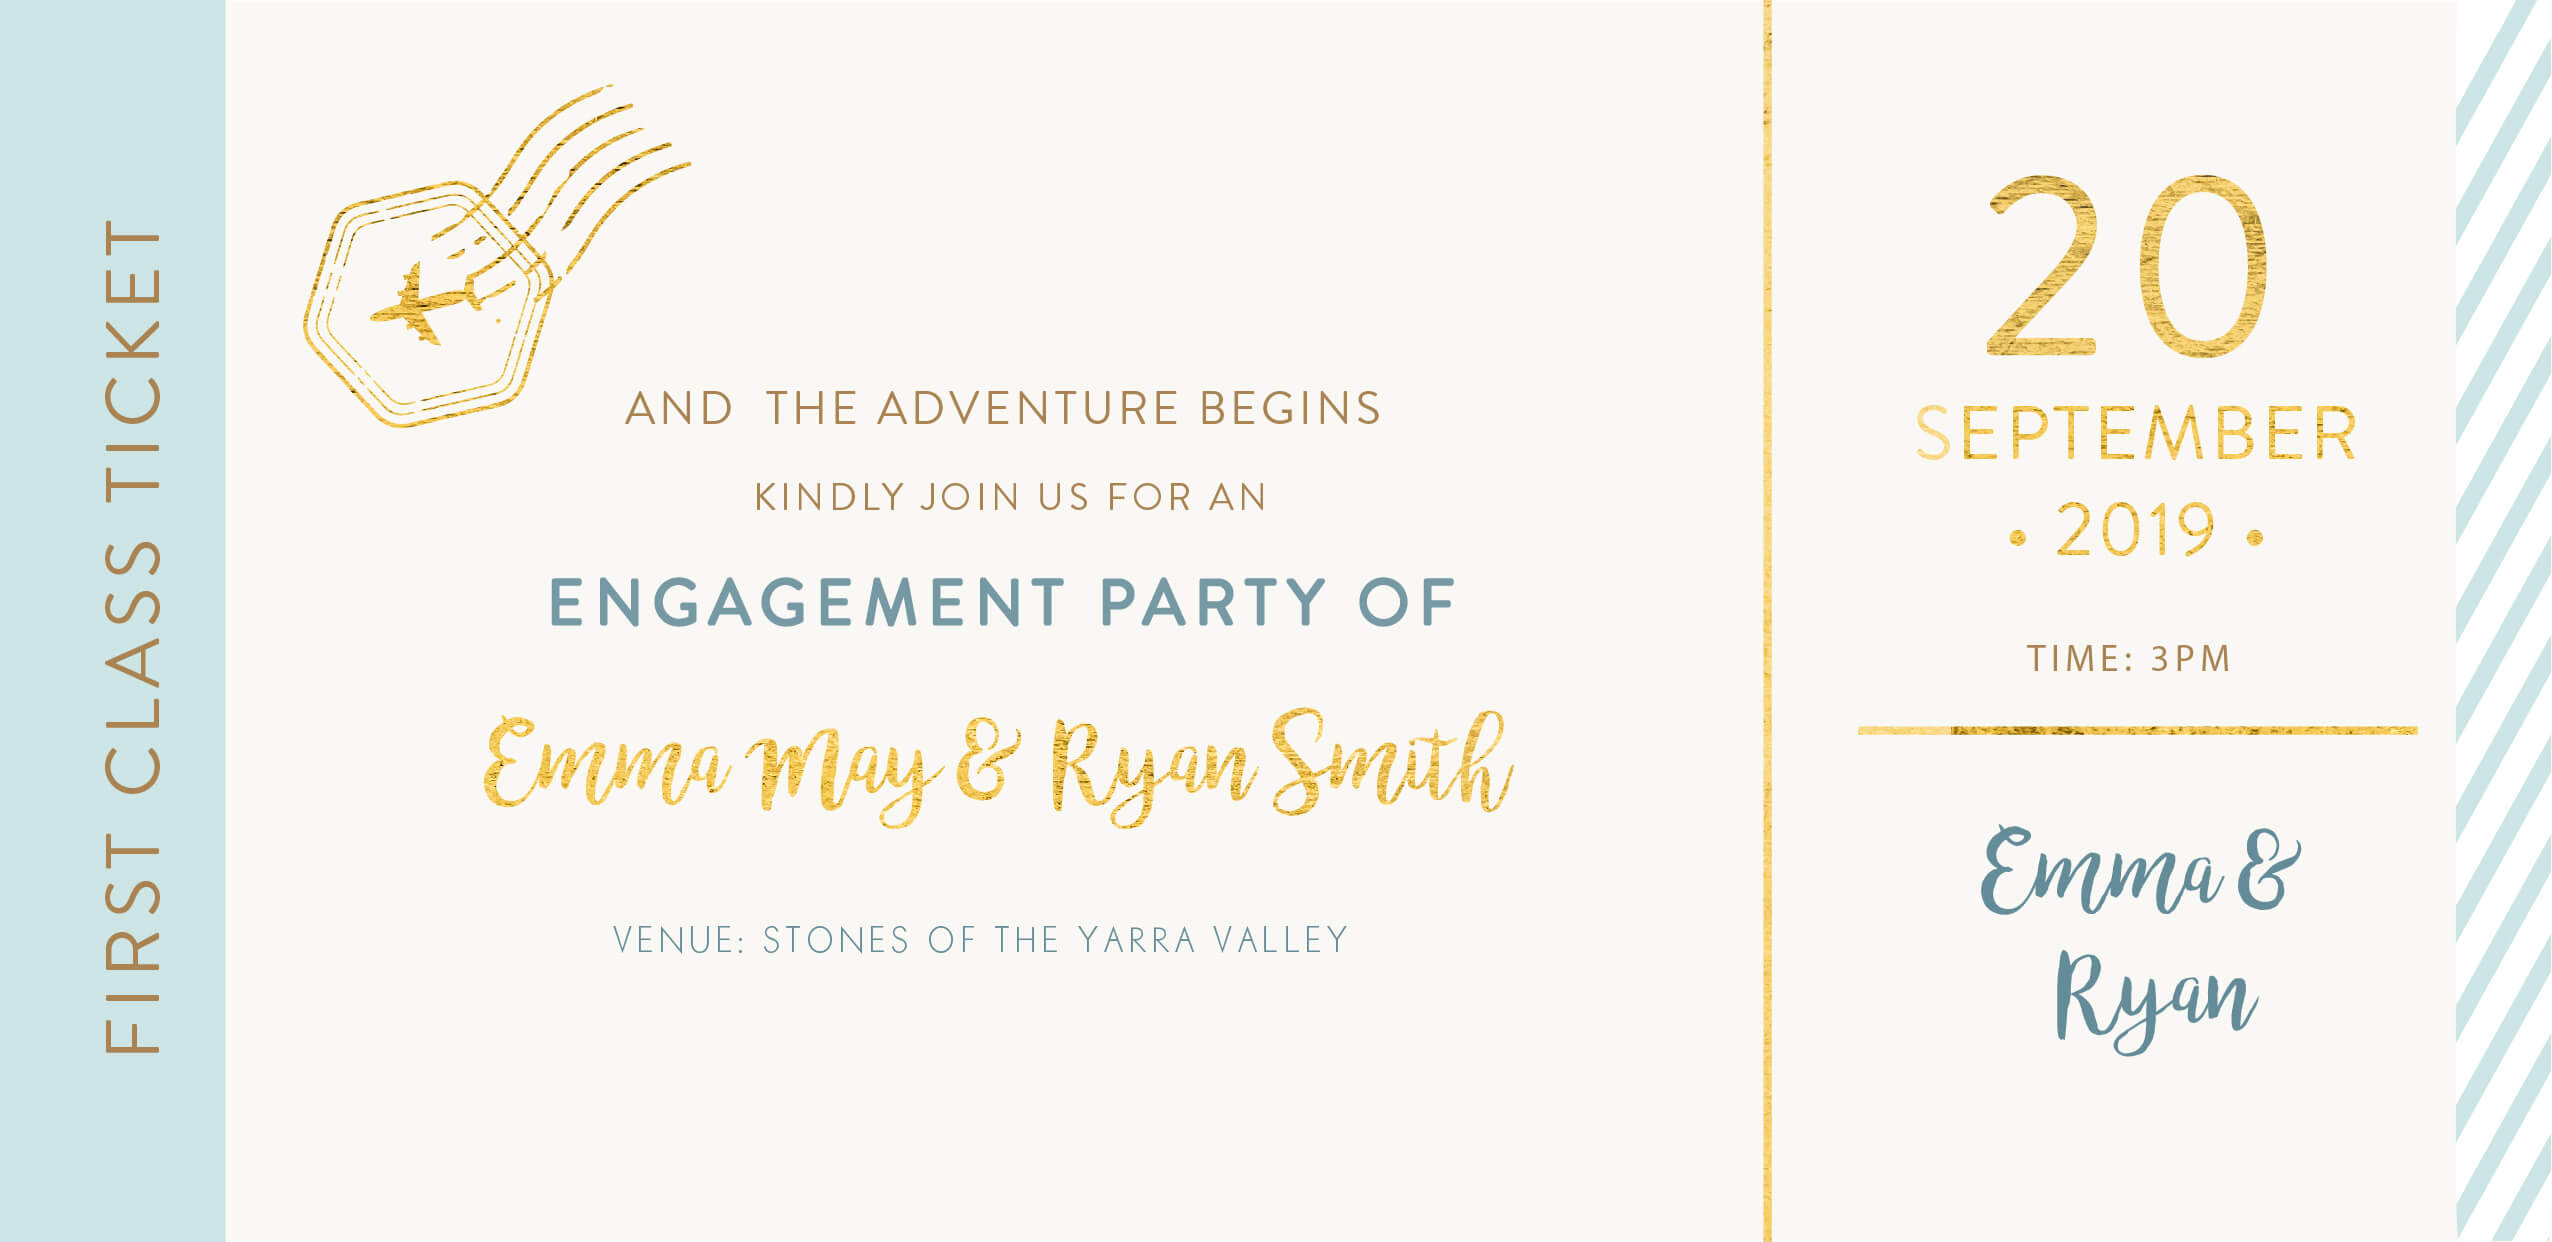 Lets Travel Together - Engagement Invitations